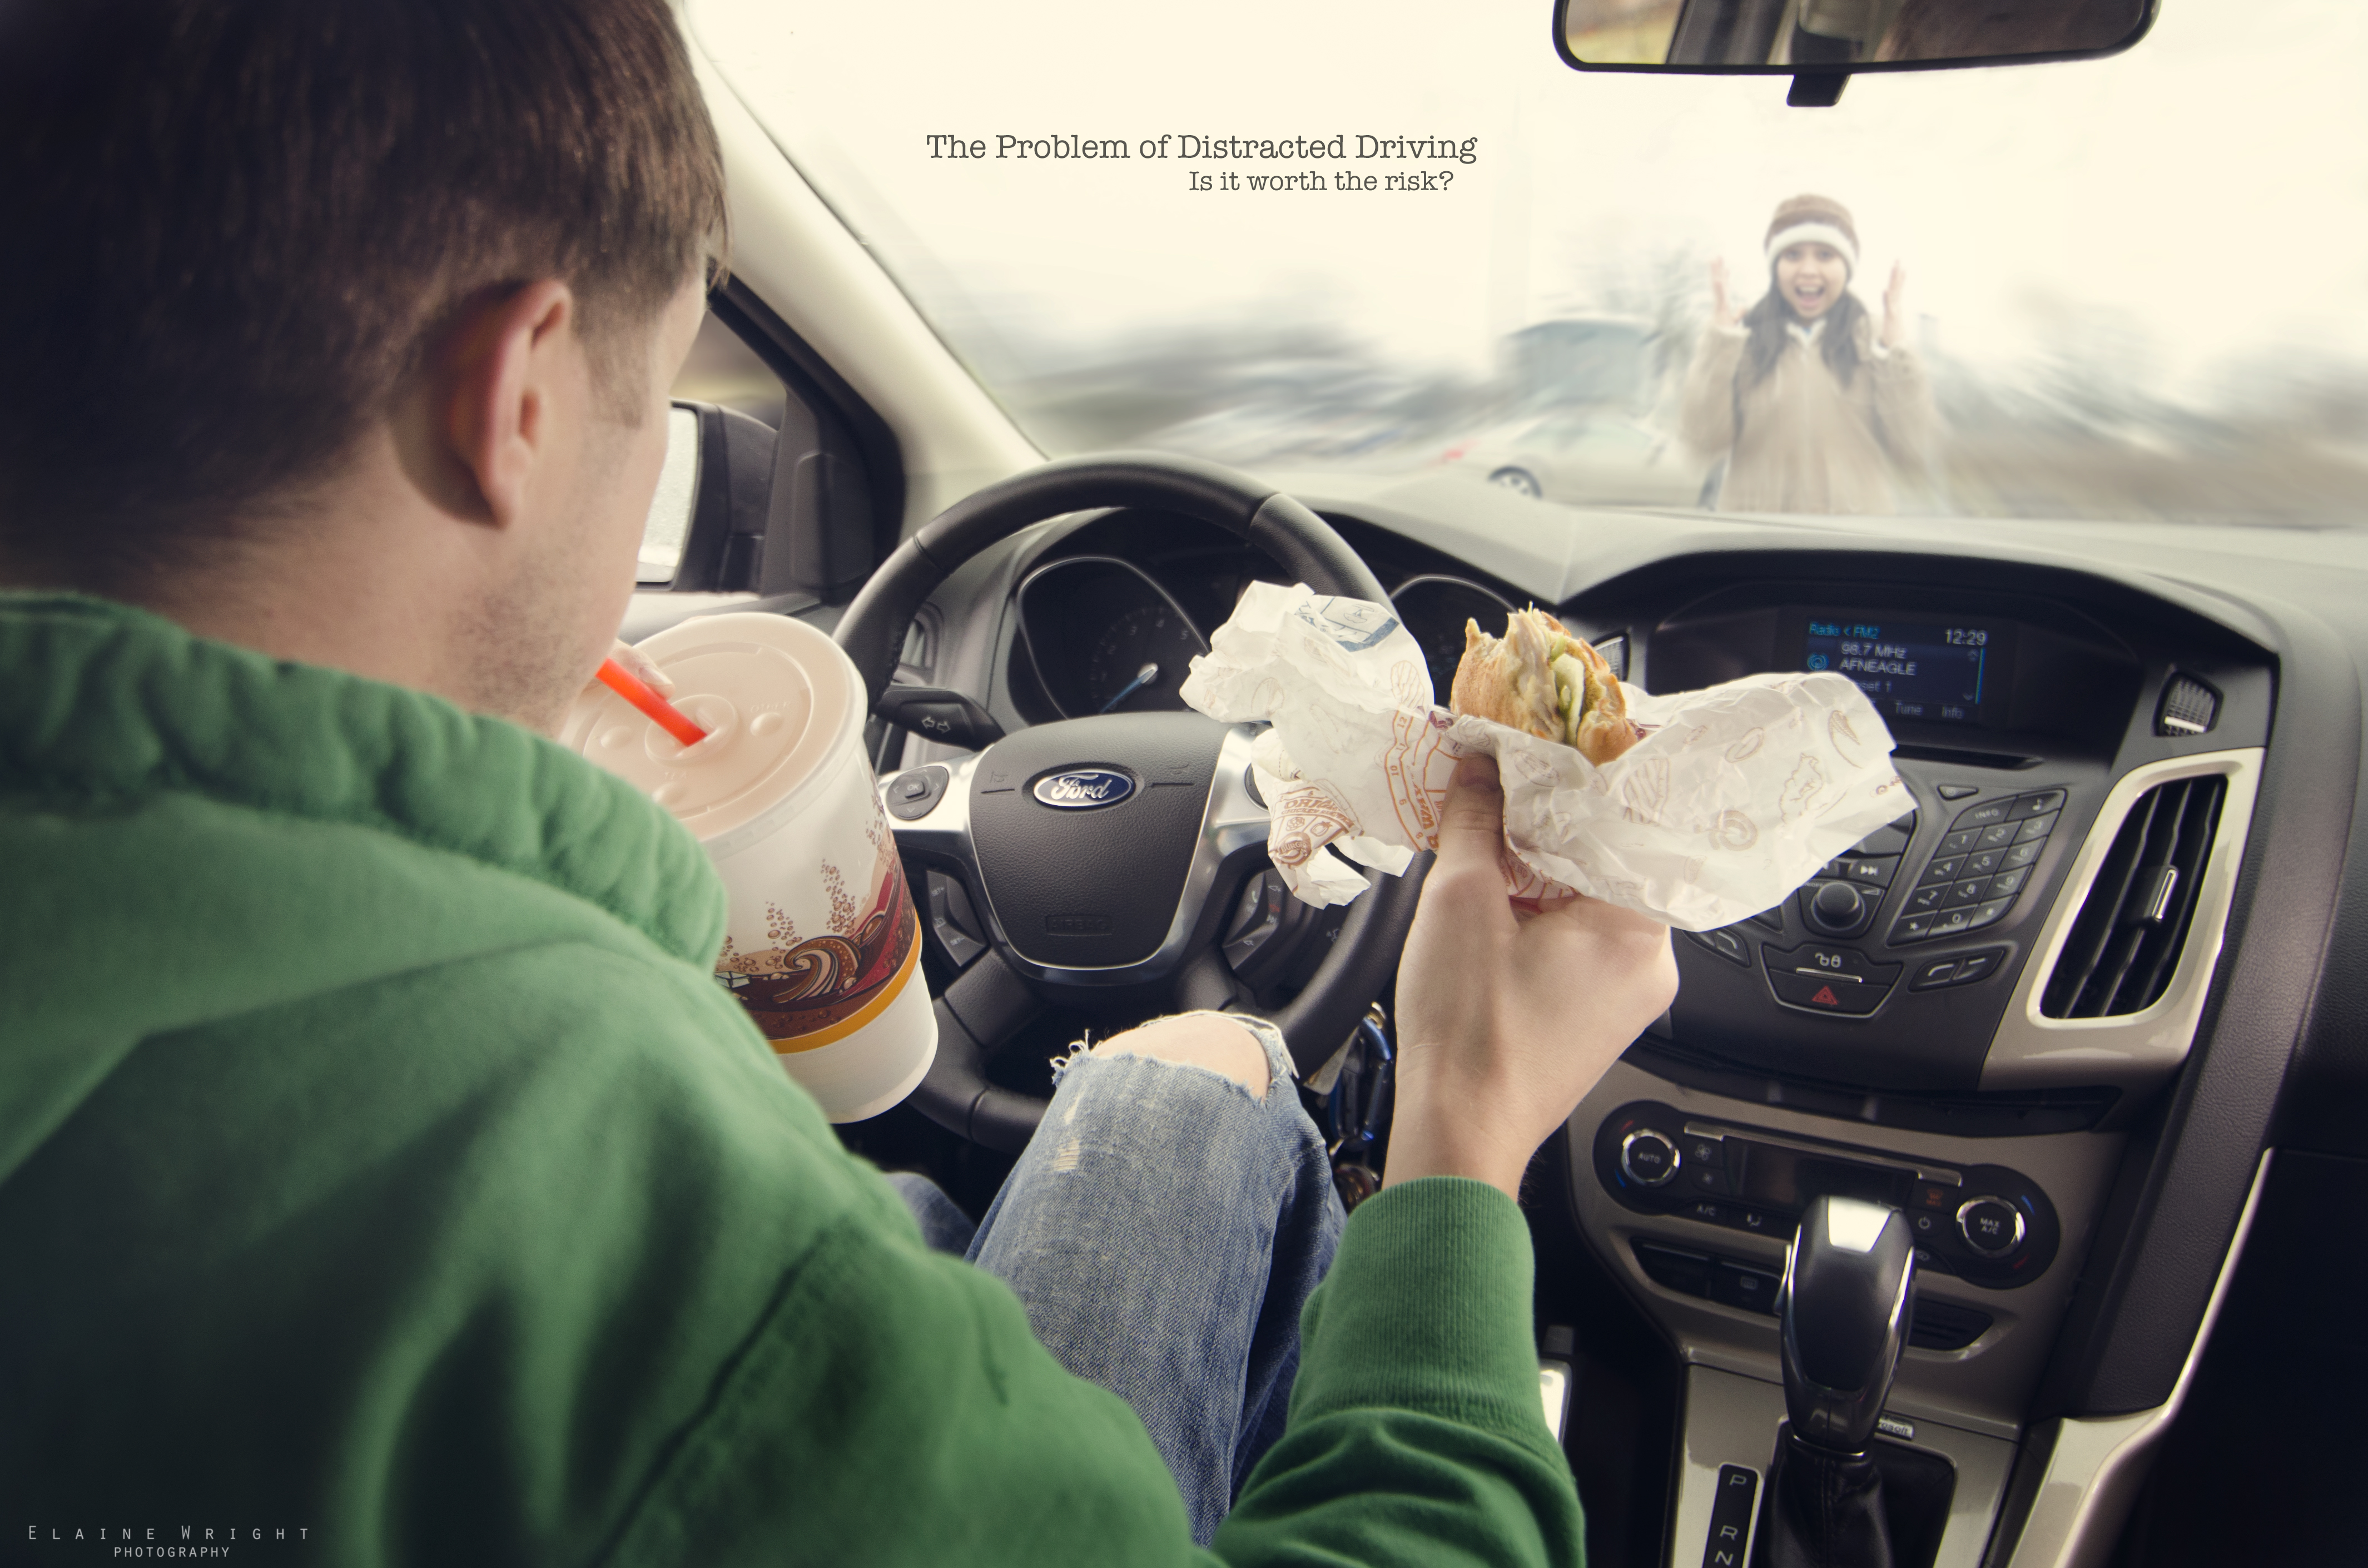 distracted driving 3 essay Distracted driving is the act of driving while engaged in other activities that take the driver's attention away from the road all distractions compromise the safety.